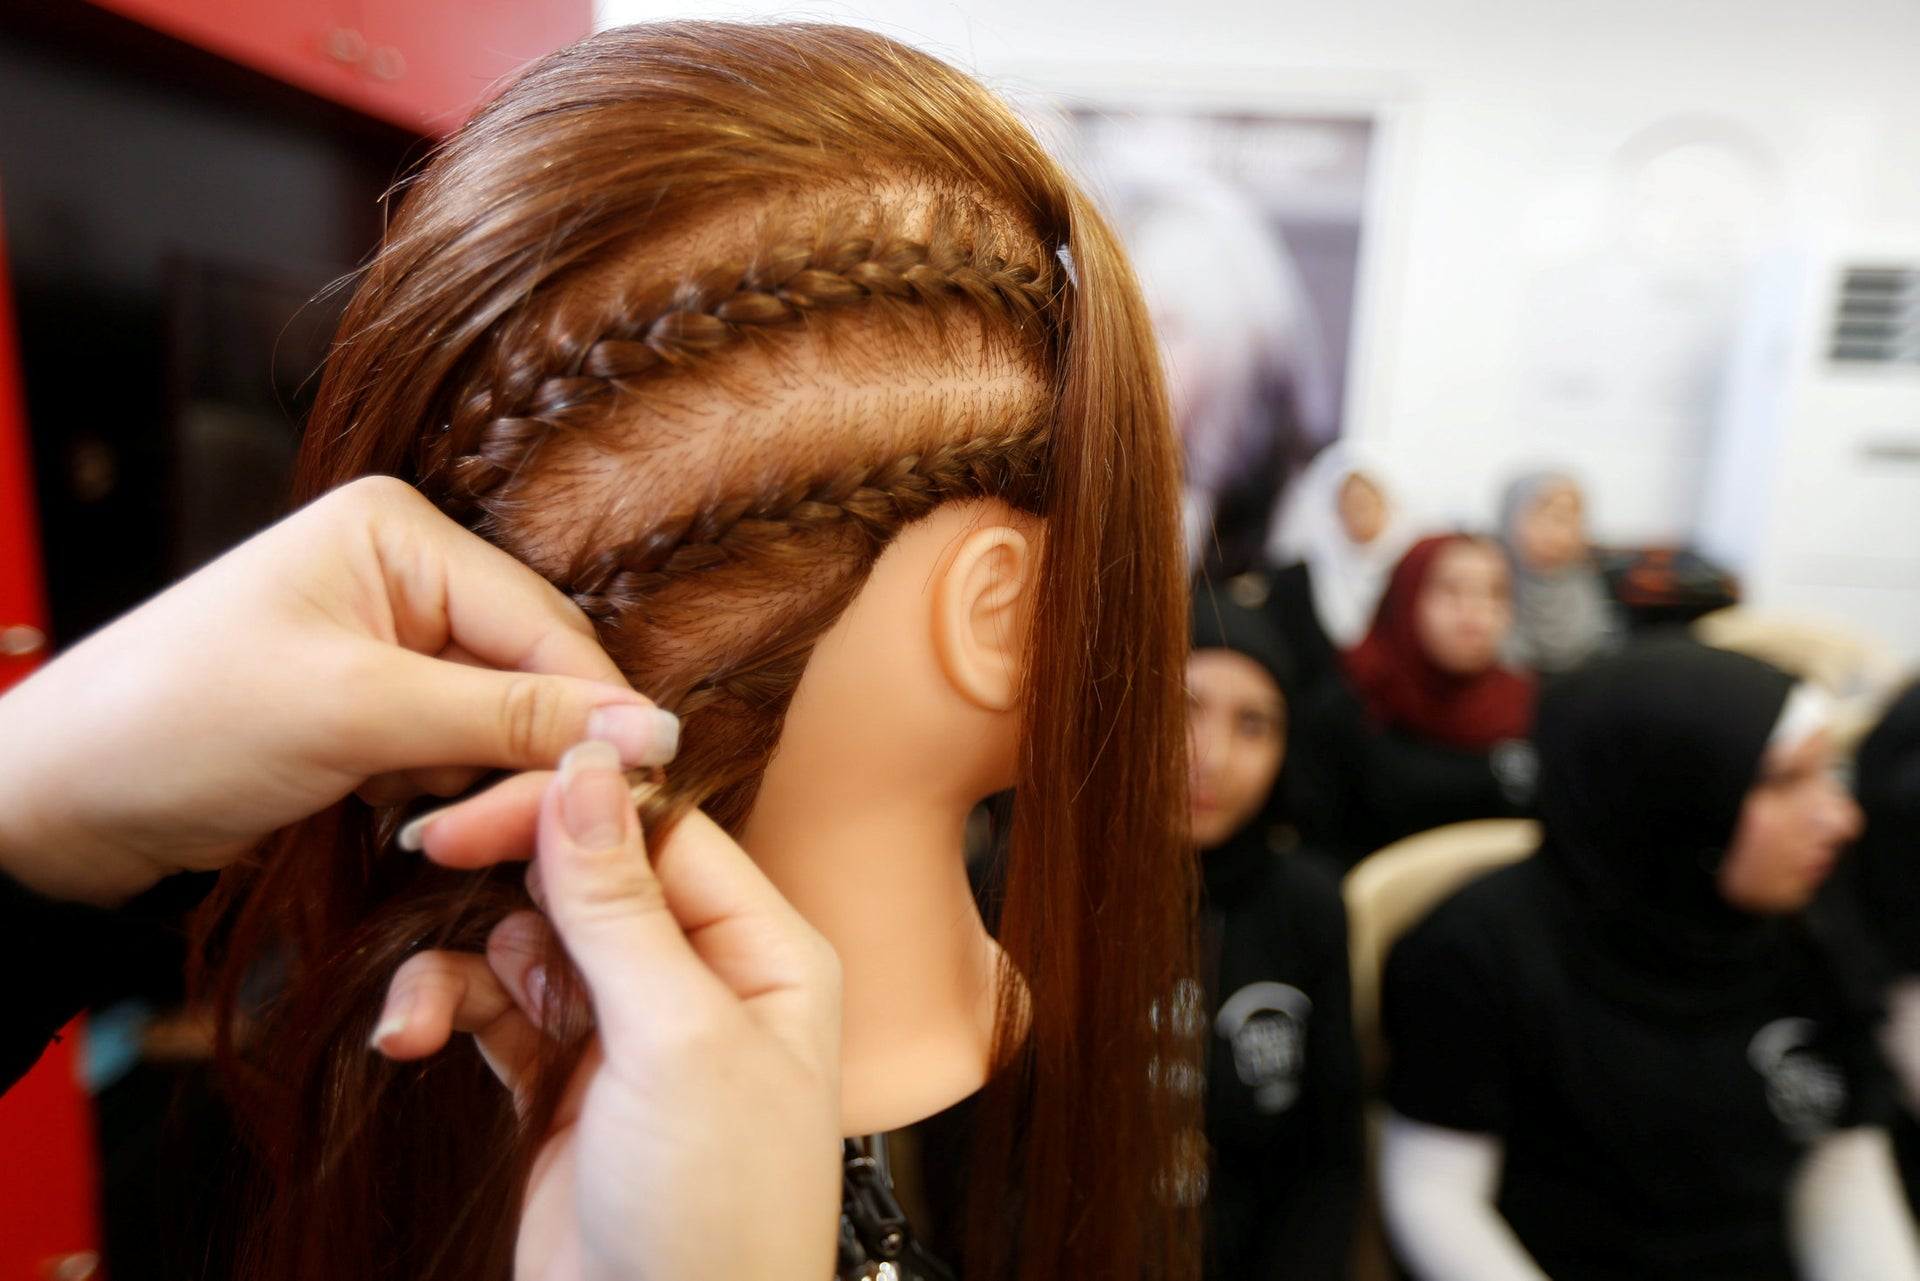 A woman practices on hair mannequins at a training salon in Bar Elias town, in the Bekaa valley, Lebanon July 25, 2018.